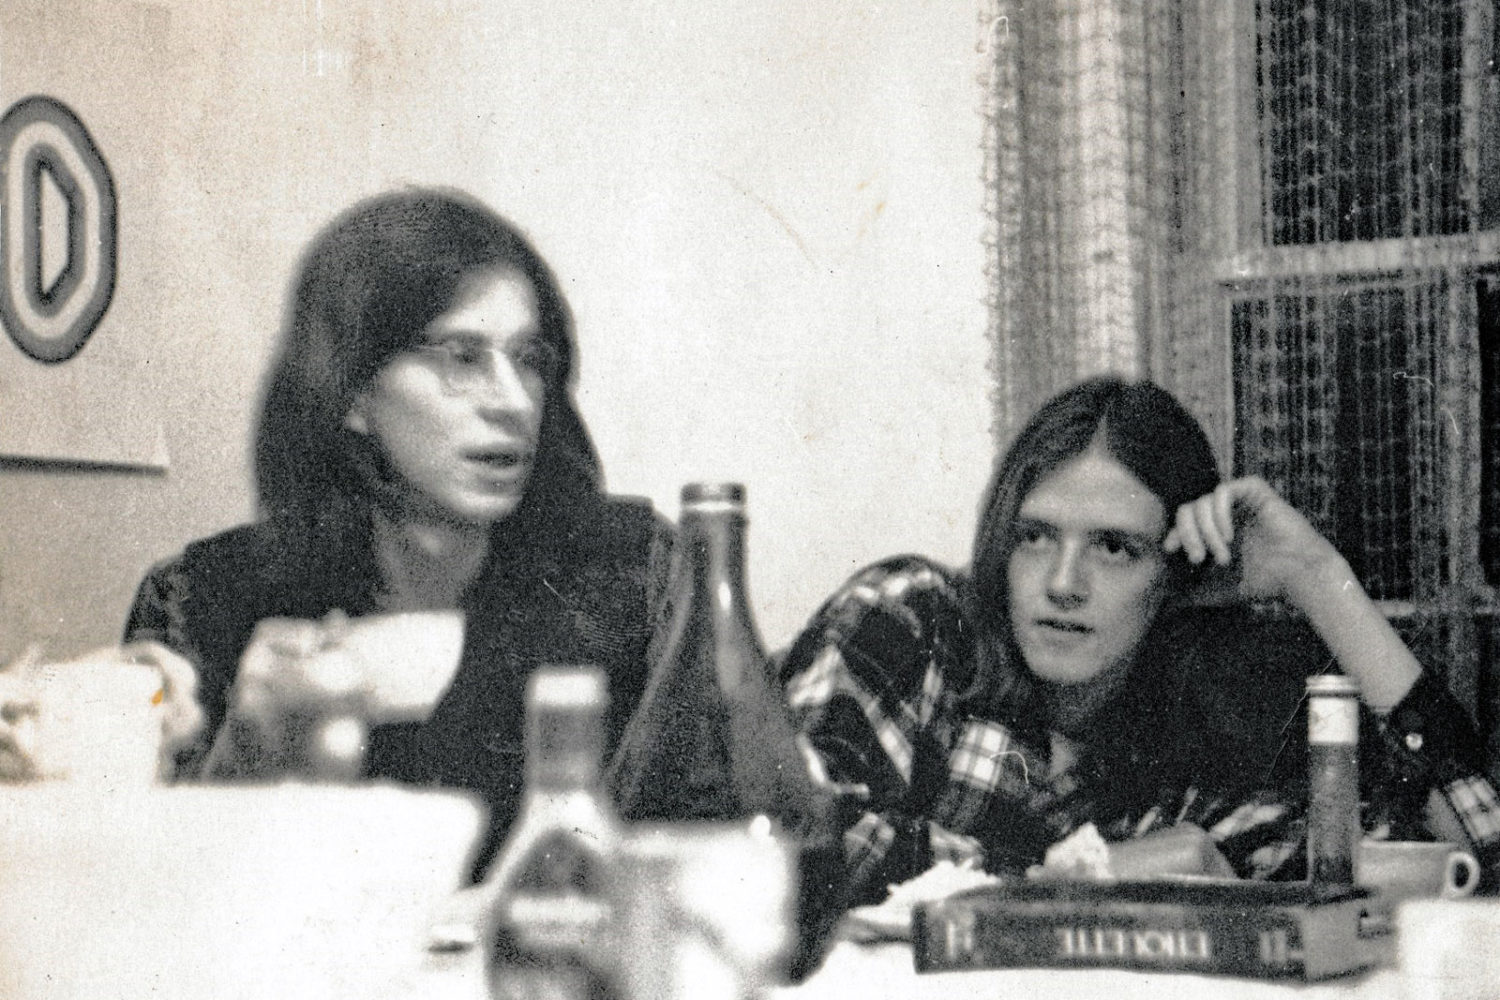 Paul Dodd and Dave Mahoney at Dave Jolly, Kenny Nacher and Rich Stim apartment 1969